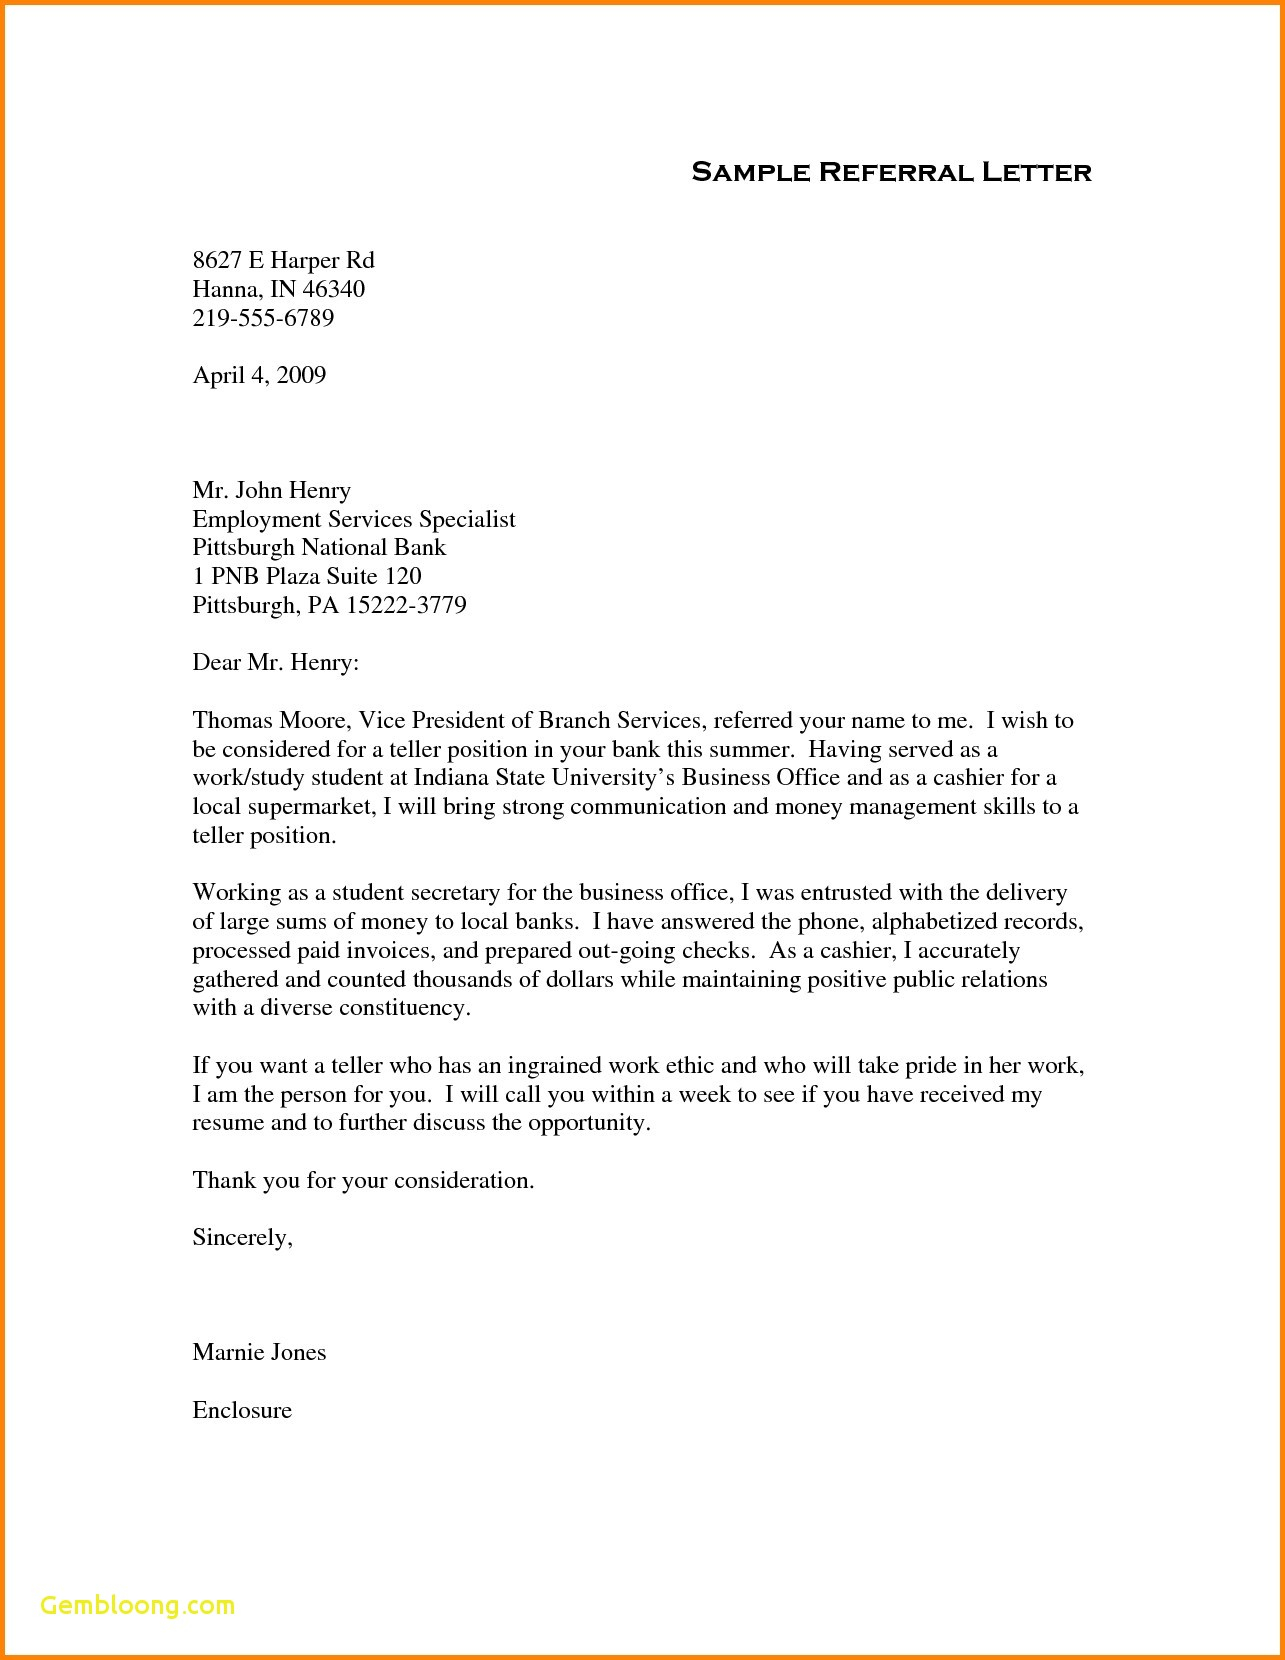 Medical Consult Letter Template - Thank You for Your Referral Letters Appeal Letter Template Medical